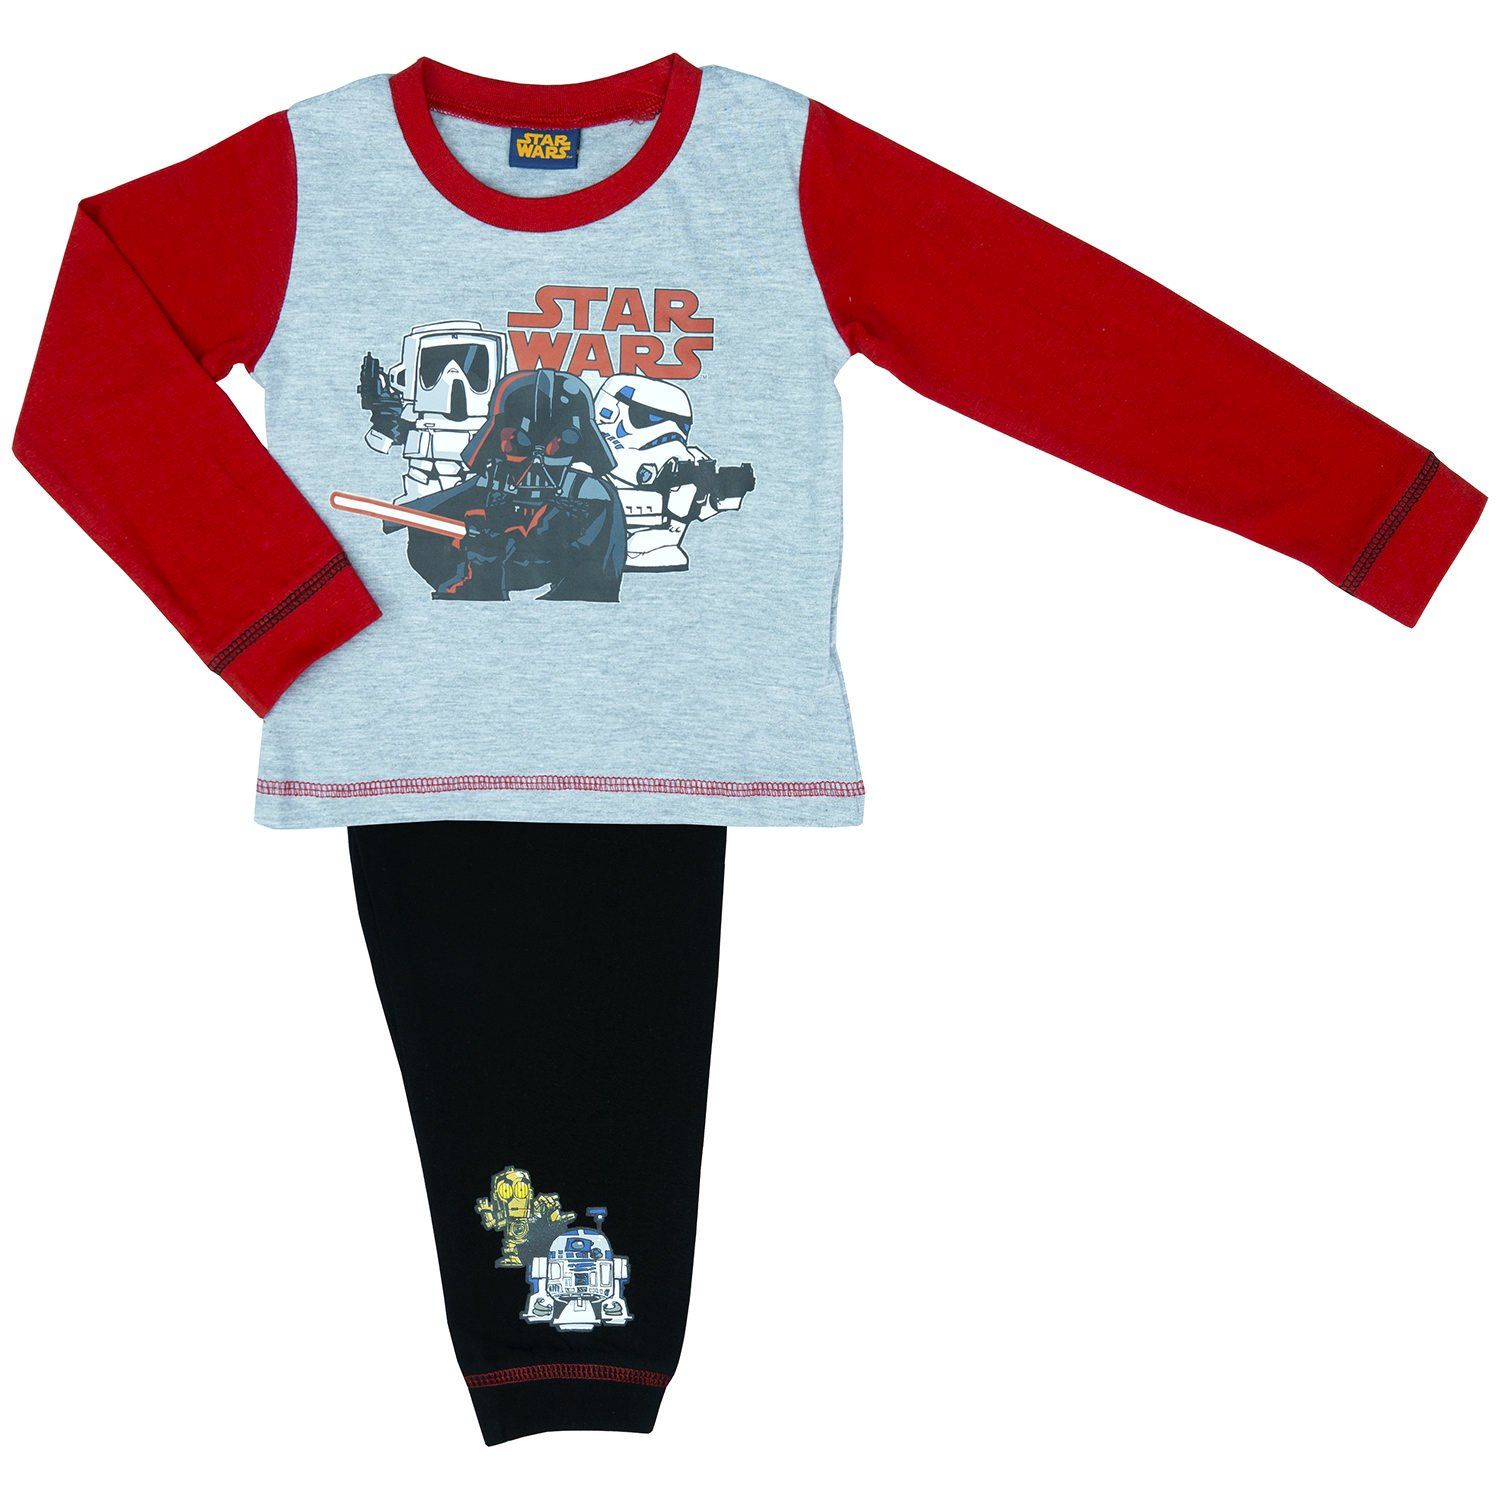 Boys Star Wars Cartoon Pyjama Set - Ages 18 month - 5 Years